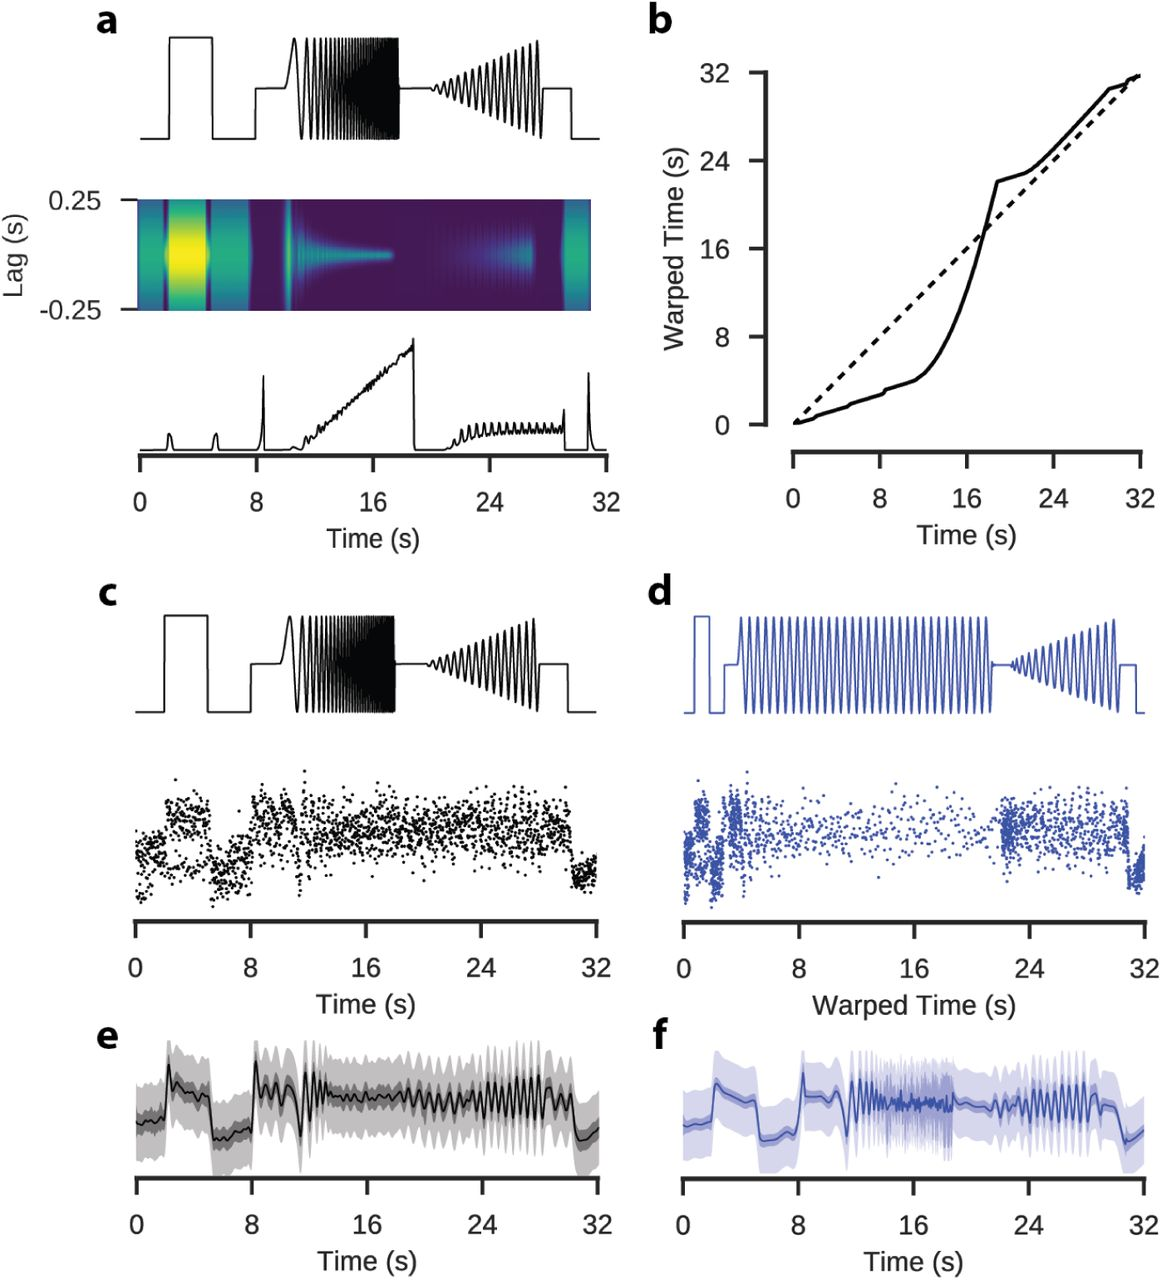 Bayesian Hypothesis Testing And Experimental Design For Two-Photon